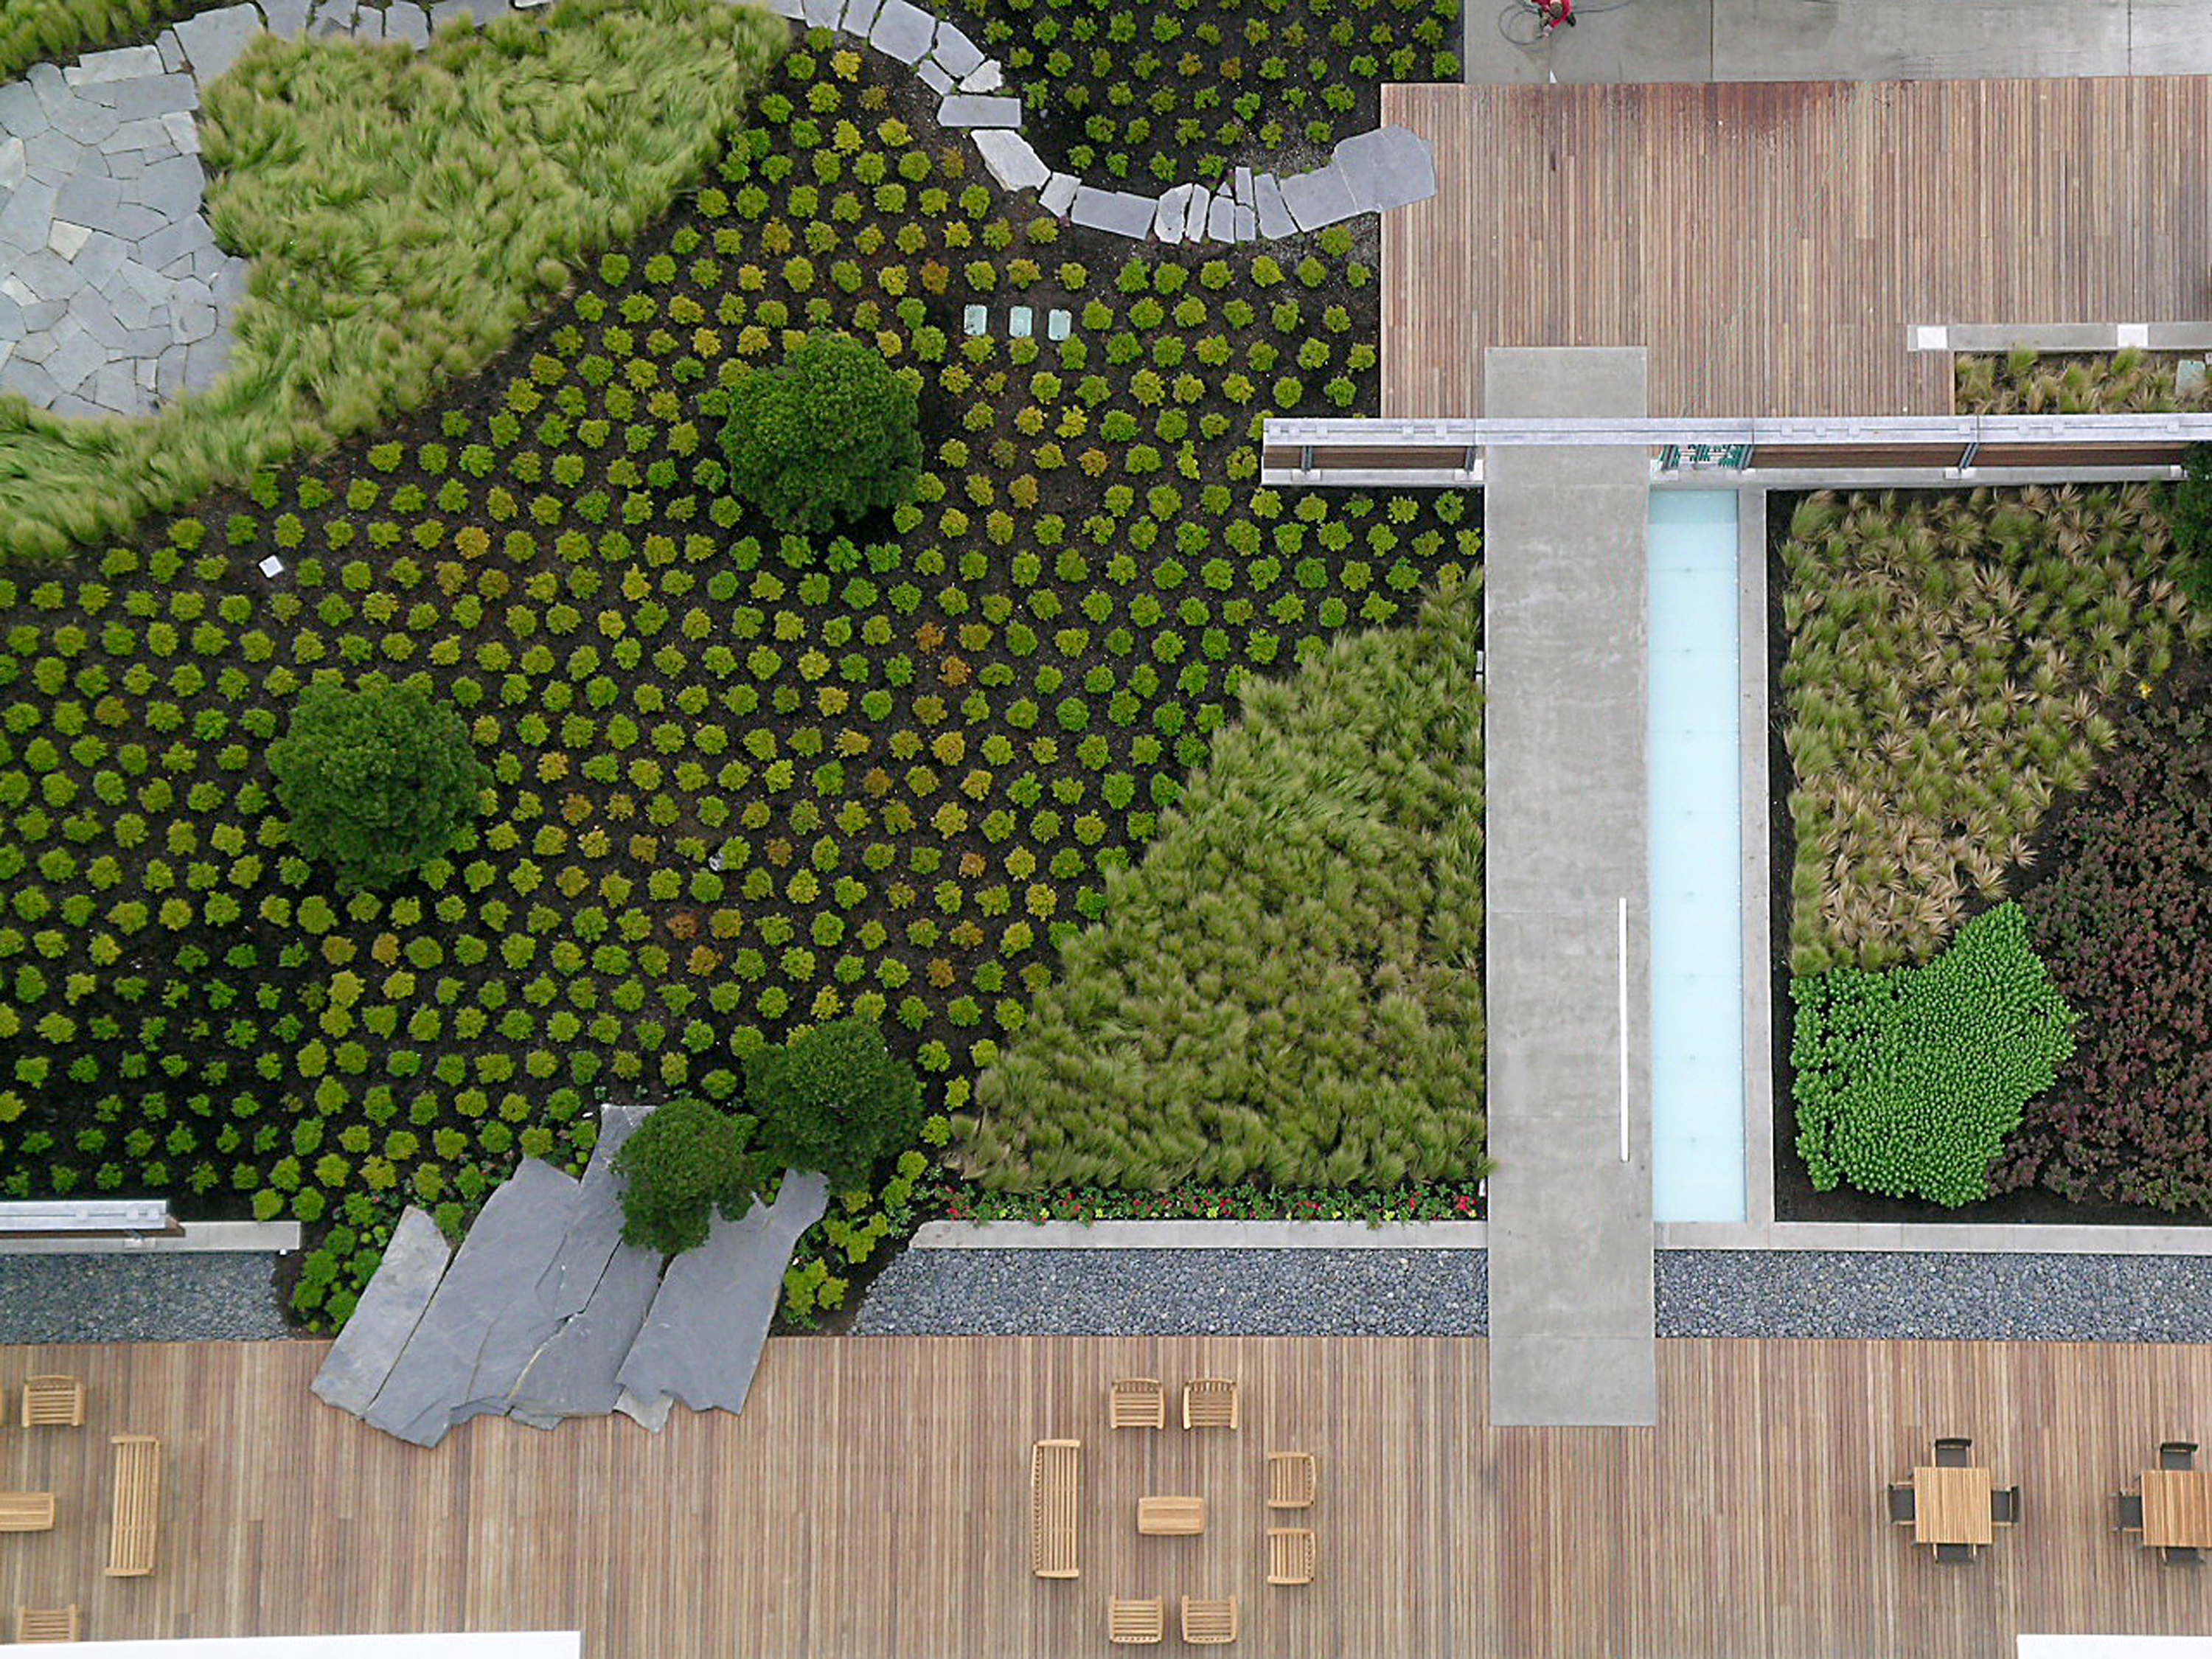 Washington Mutual Center Roof Garden Seattle Washington 2007